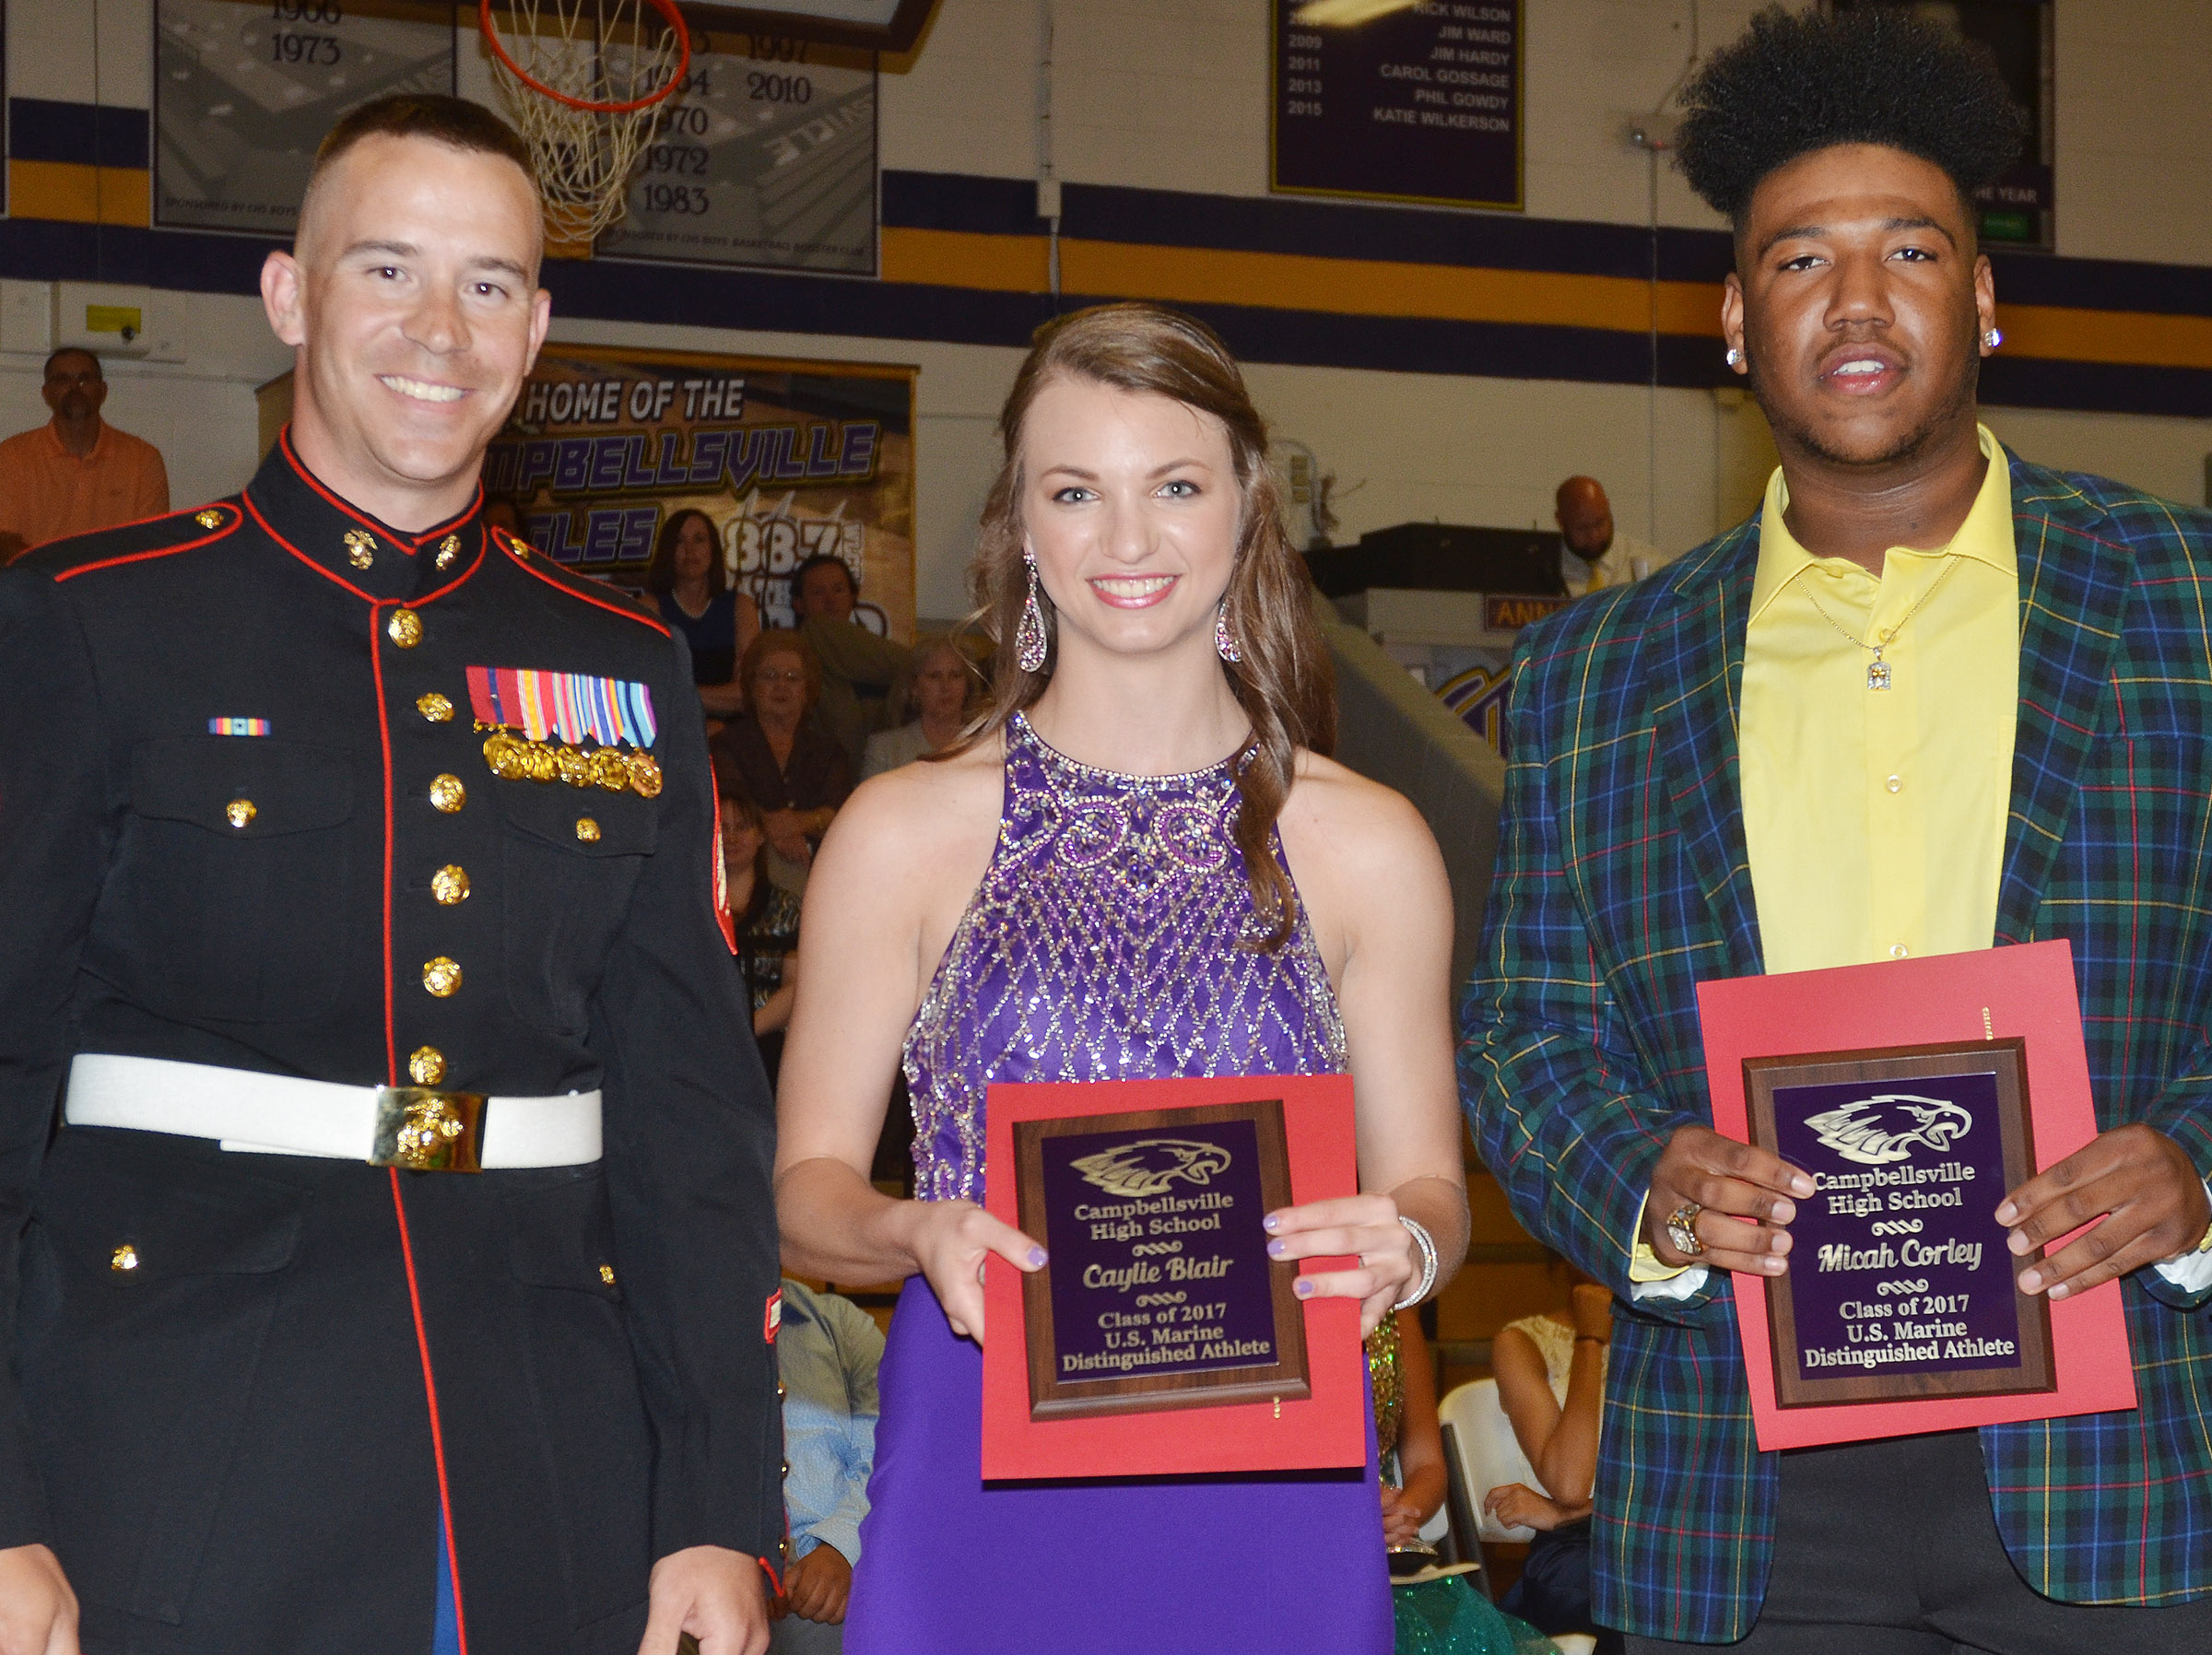 Caylie Blair and Micah Corley receive the U.S. Marine Distinguished Athlete awards from Sgt. Nelson.